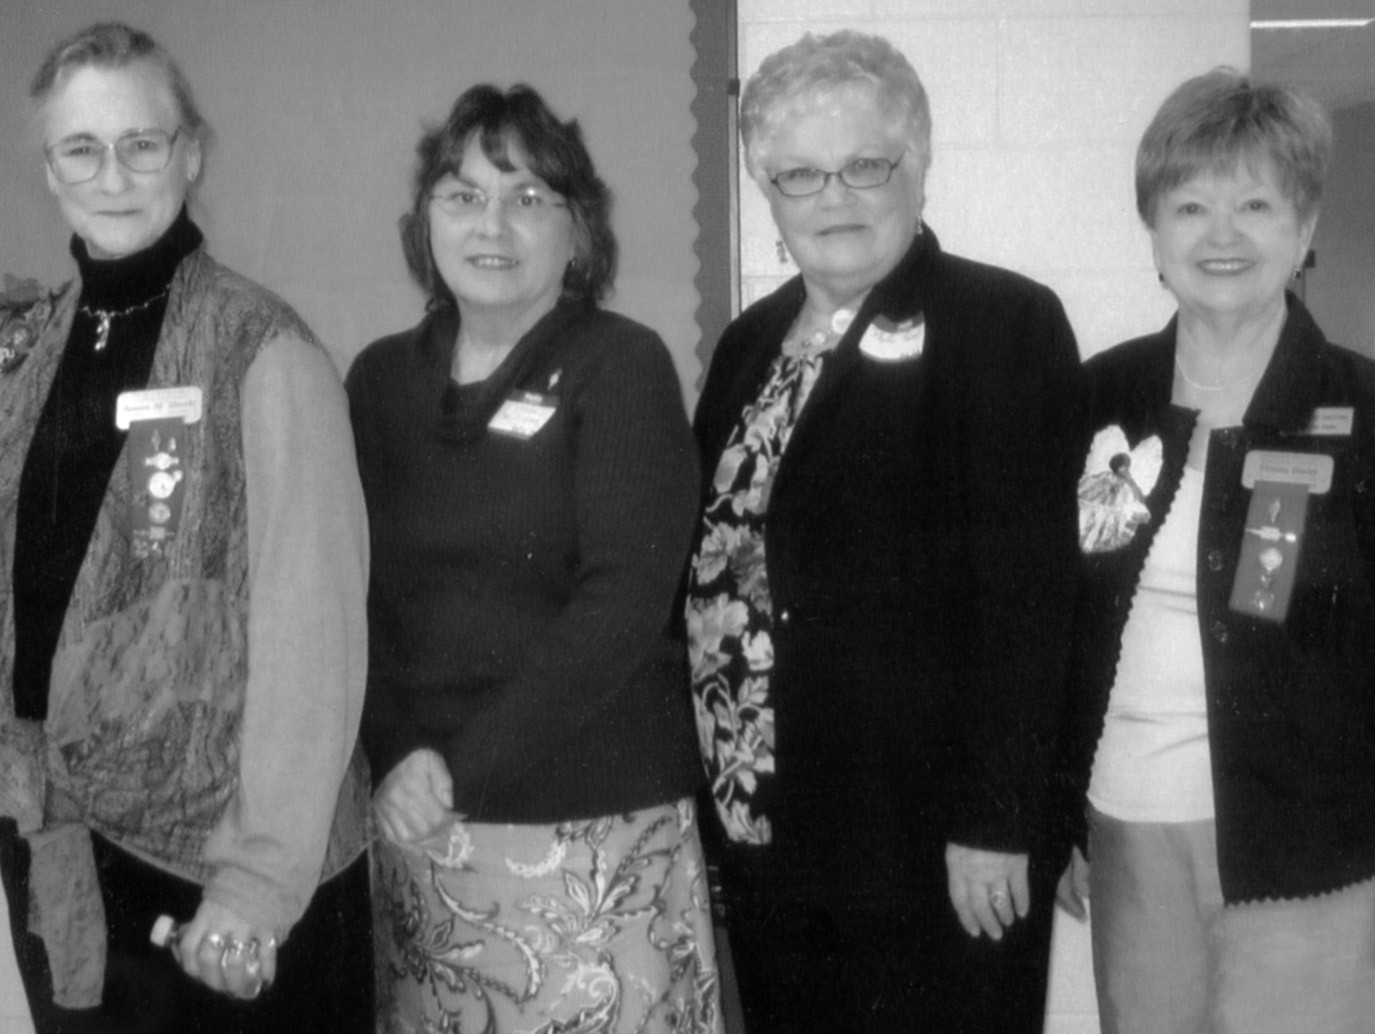 From left: Bonnie Shanks, Beta state president, Linda Williams, incoming Beta Delta chapter president, Phyllis Russell, outgoing Beta Delta president, and Vivian Haley, District III director.